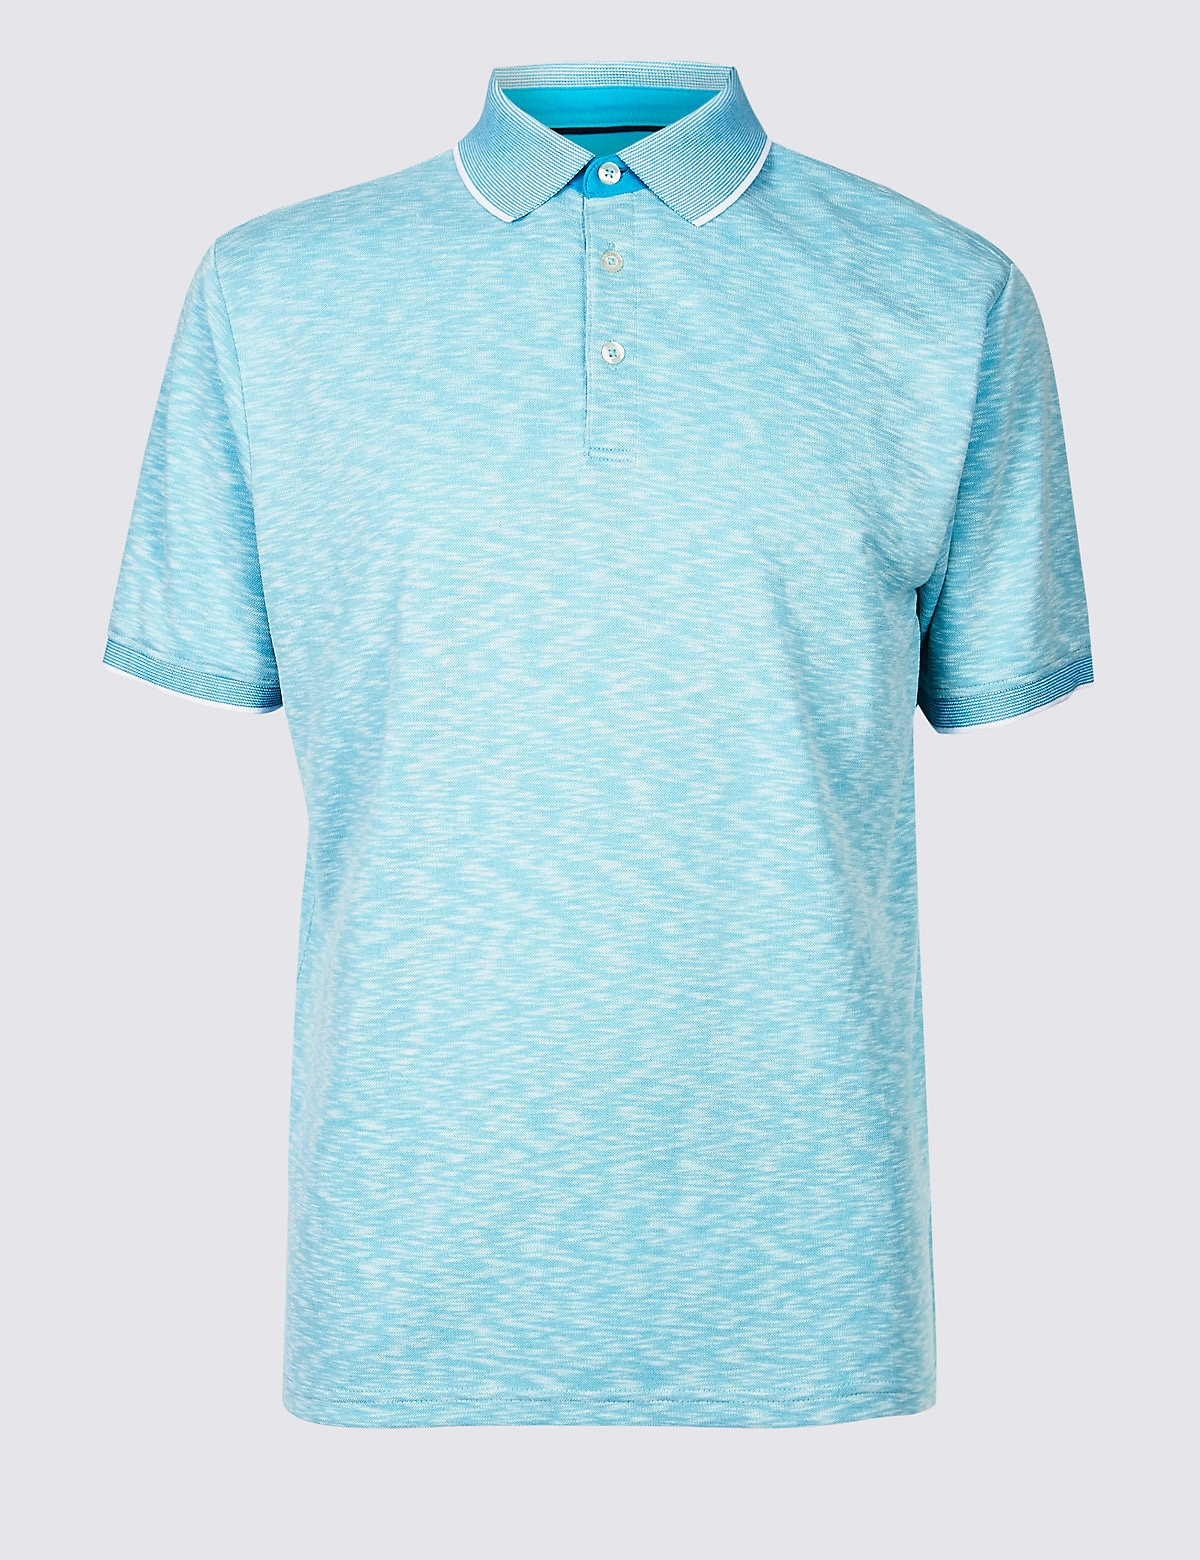 Marks & Spencer Aqua Mix Slim Fit Modal Rich Textured Polo Shirt